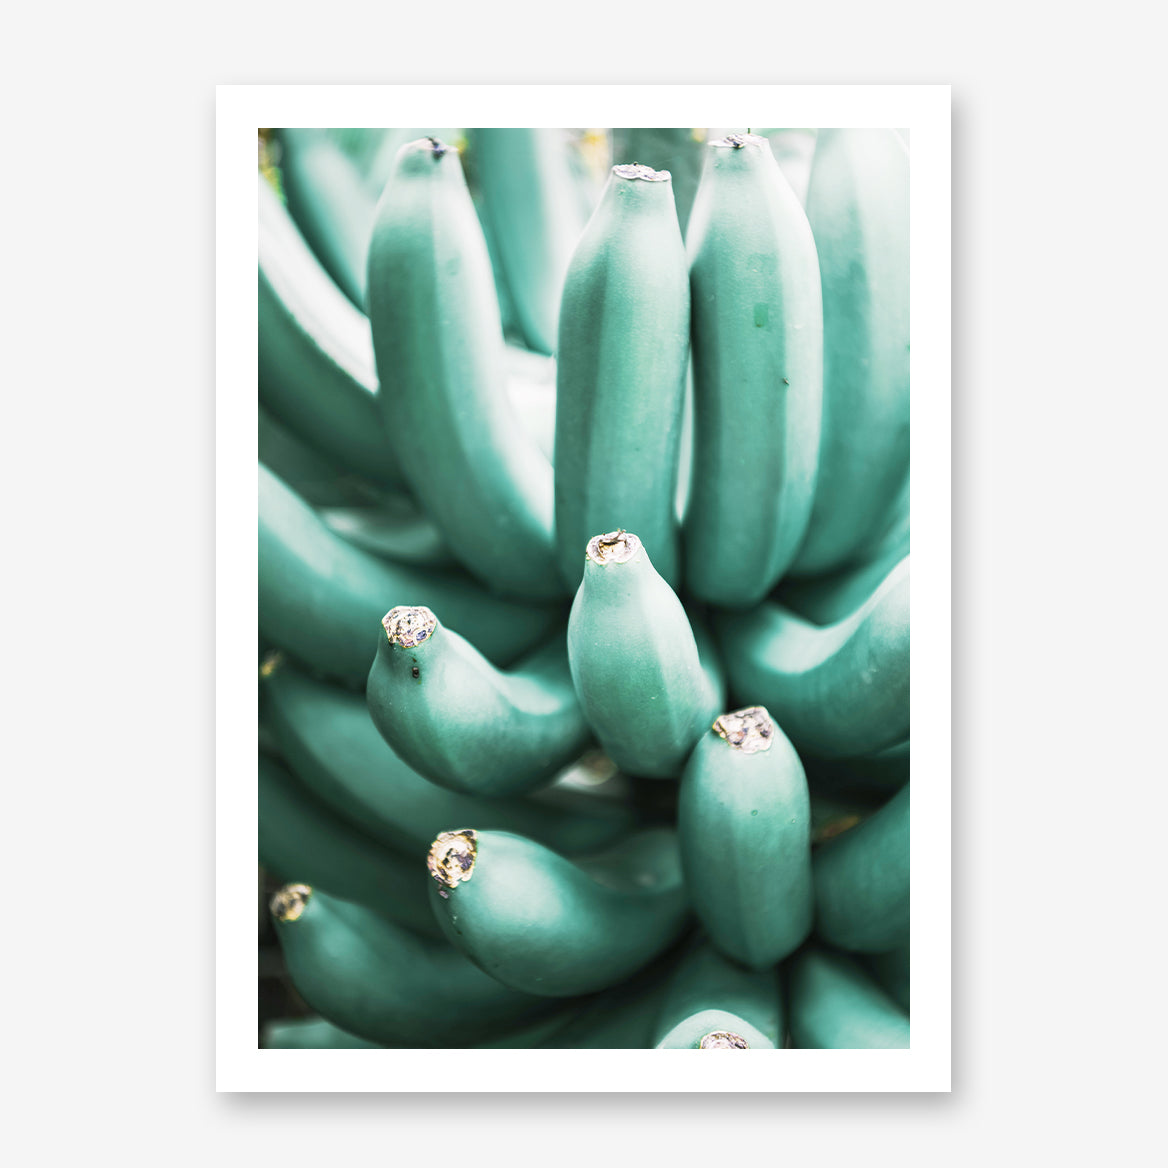 Photography poster print with a bunch of green bananas.